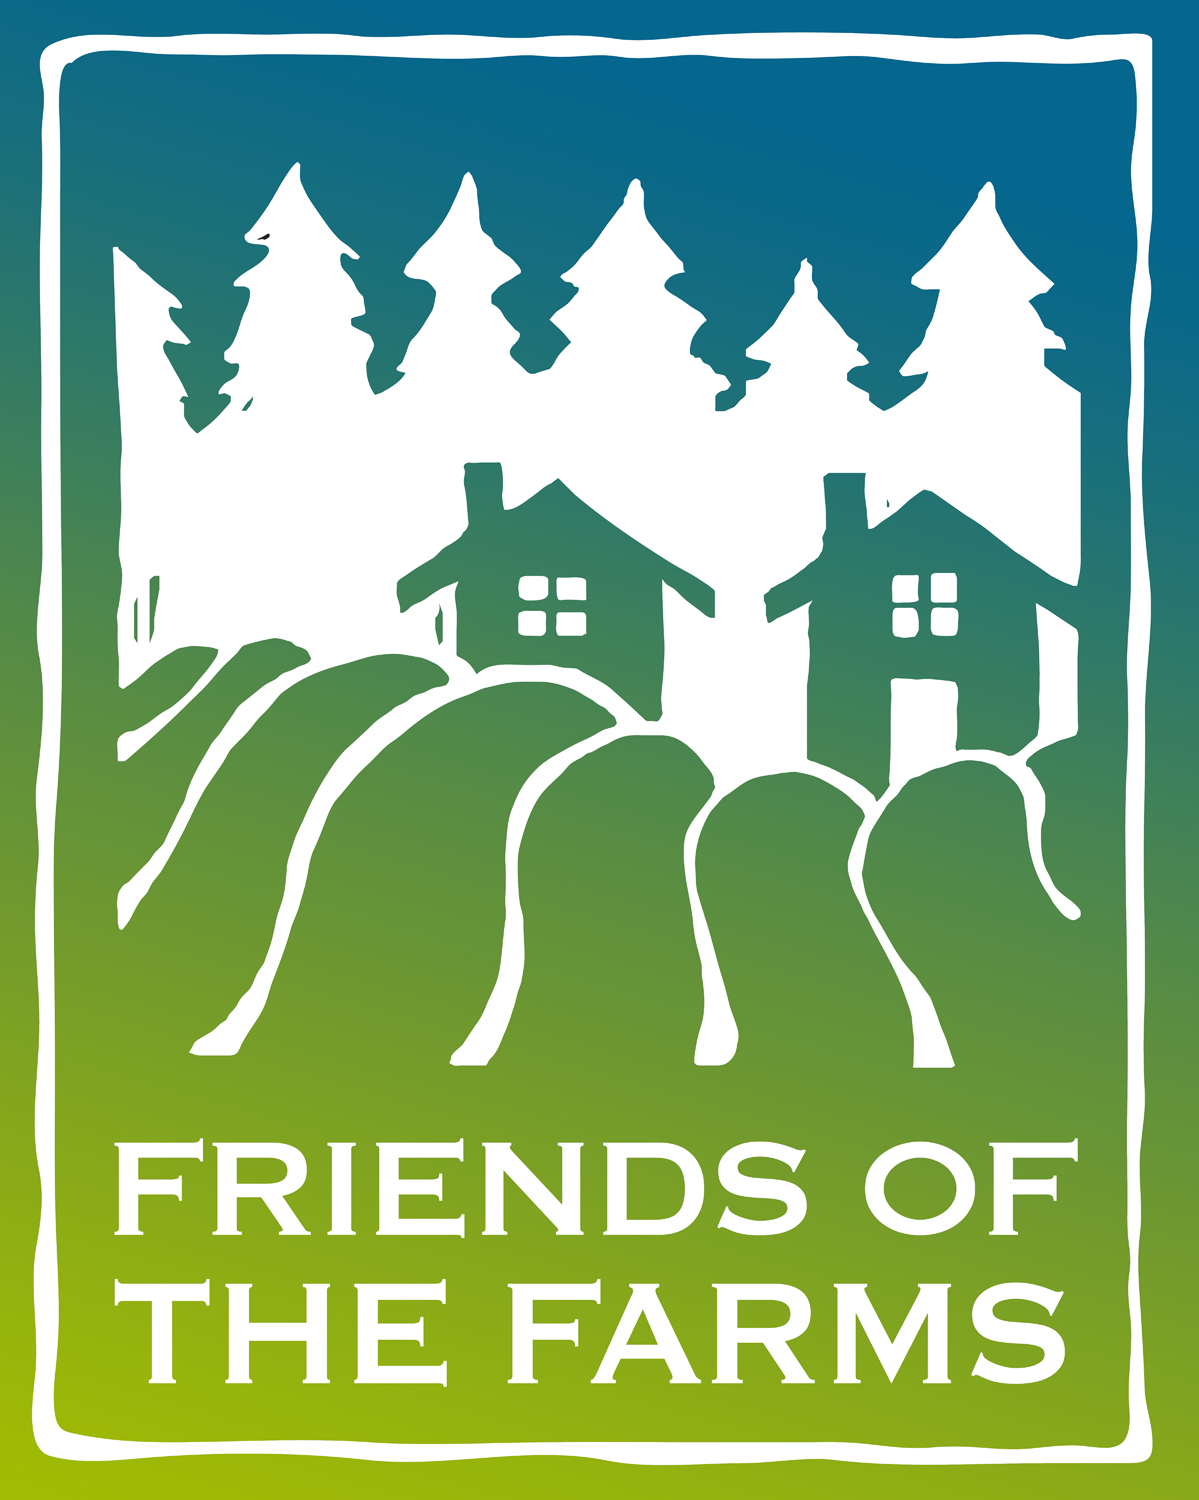 Friends of the Farms logo